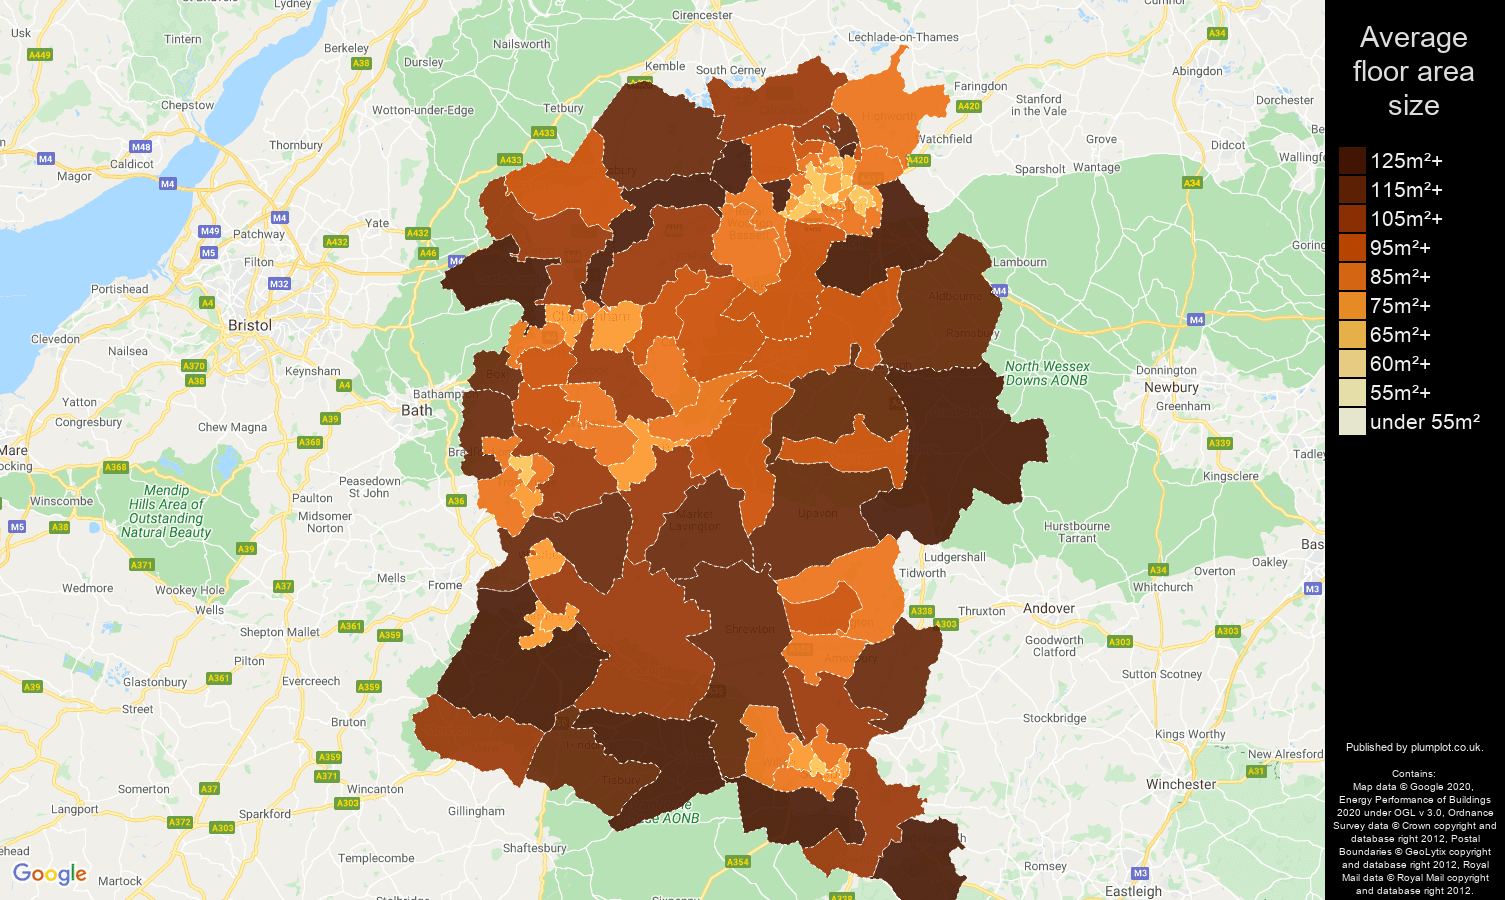 Wiltshire map of average floor area size of properties